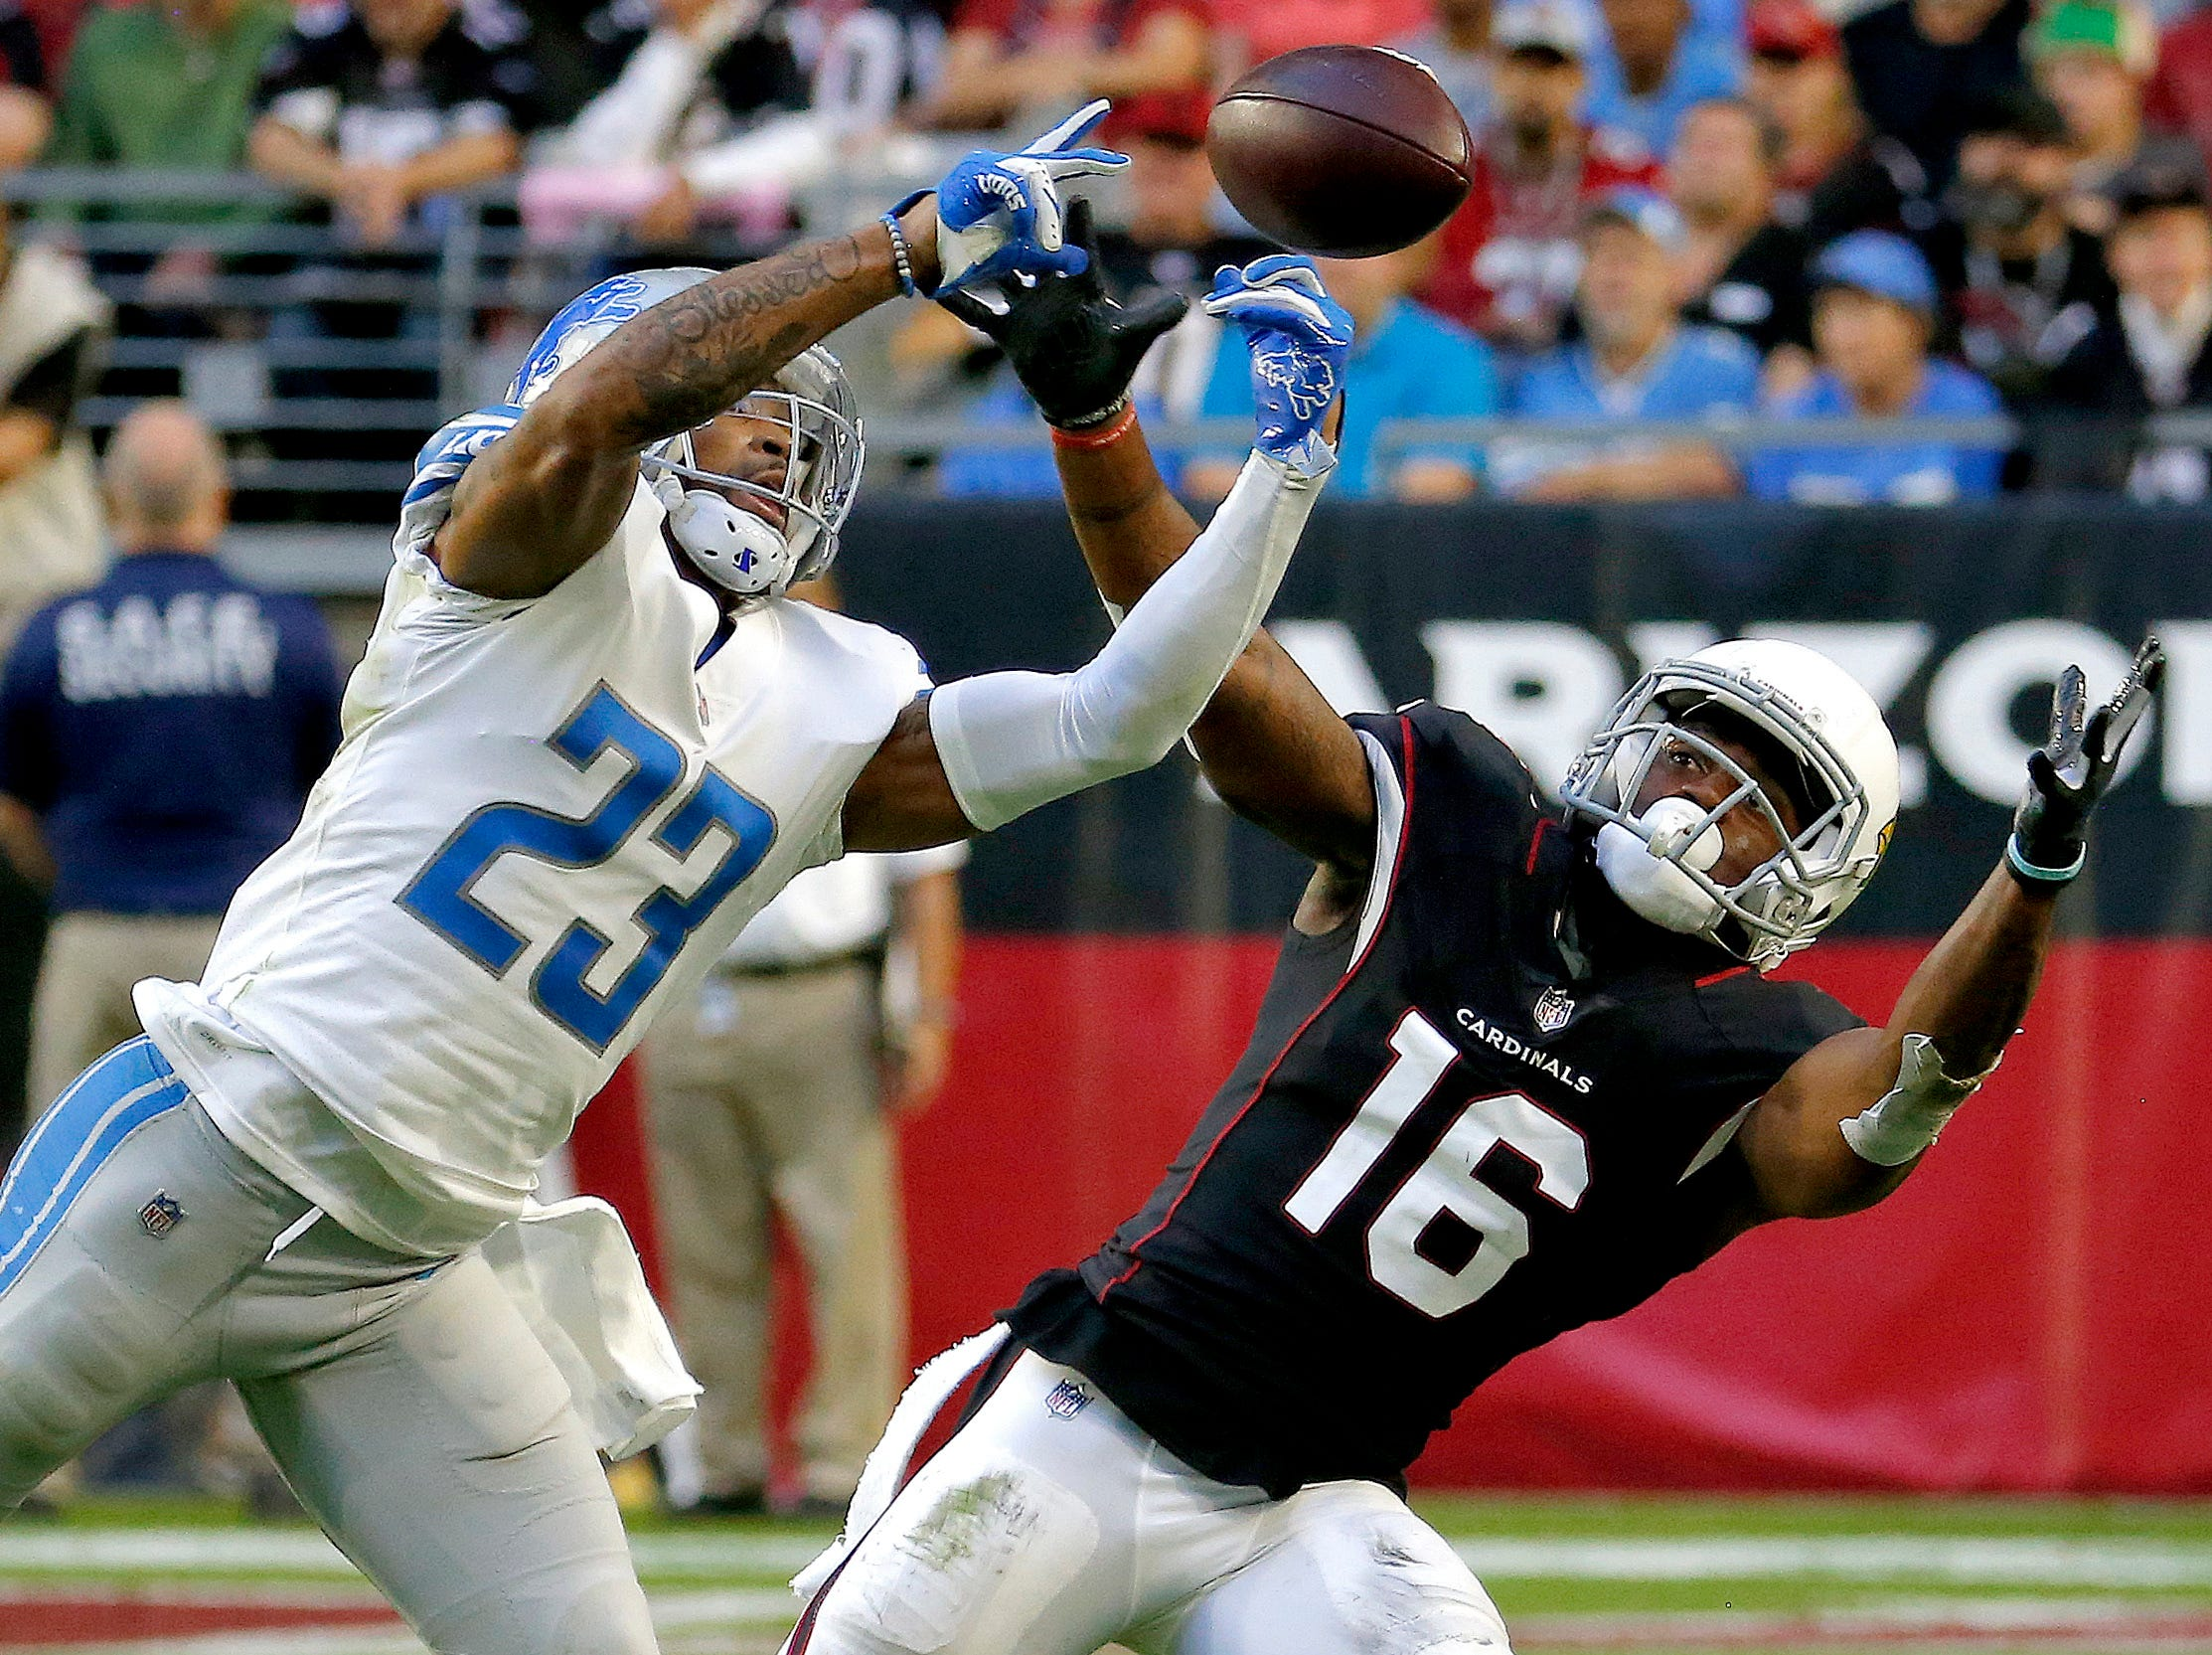 Detroit Lions cornerback Darius Slay (23) intercepts a pass intended for Arizona Cardinals wide receiver Trent Sherfield (16) during the second half.